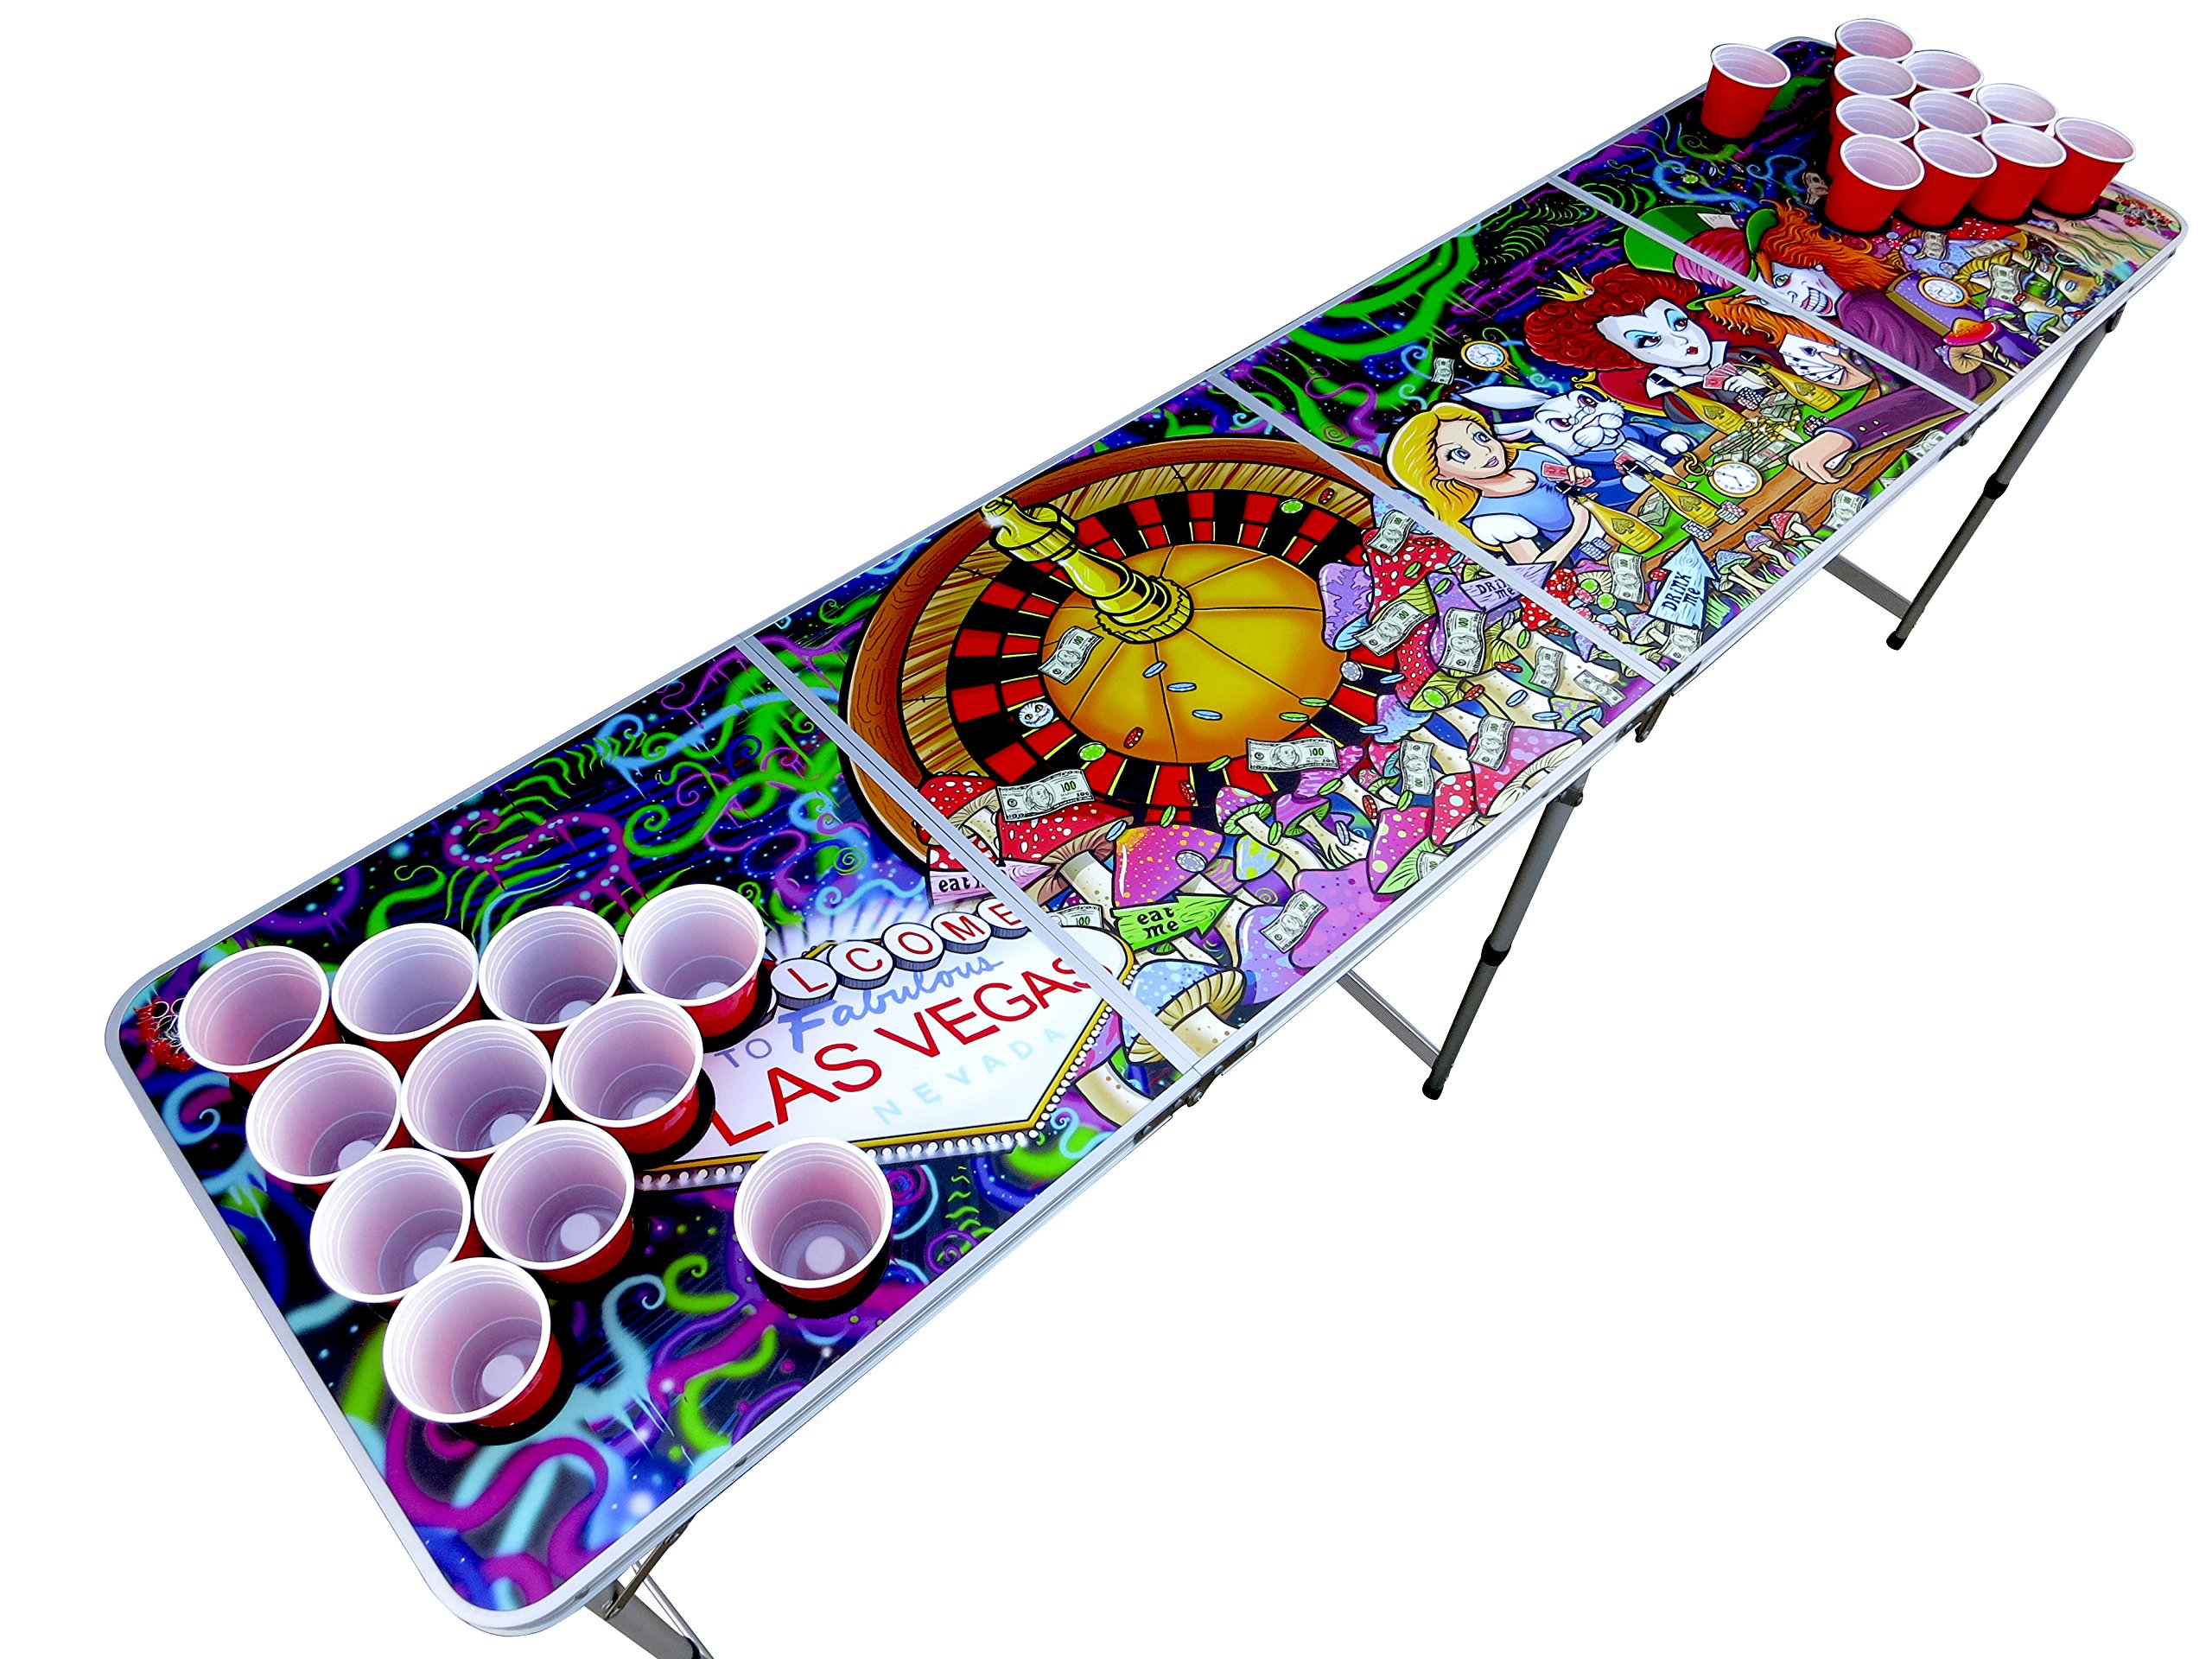 Alice in Las Vegas Psychedelic Poker Beer Pong Table with Cup Holes and Hole Covers by The Pong Squad